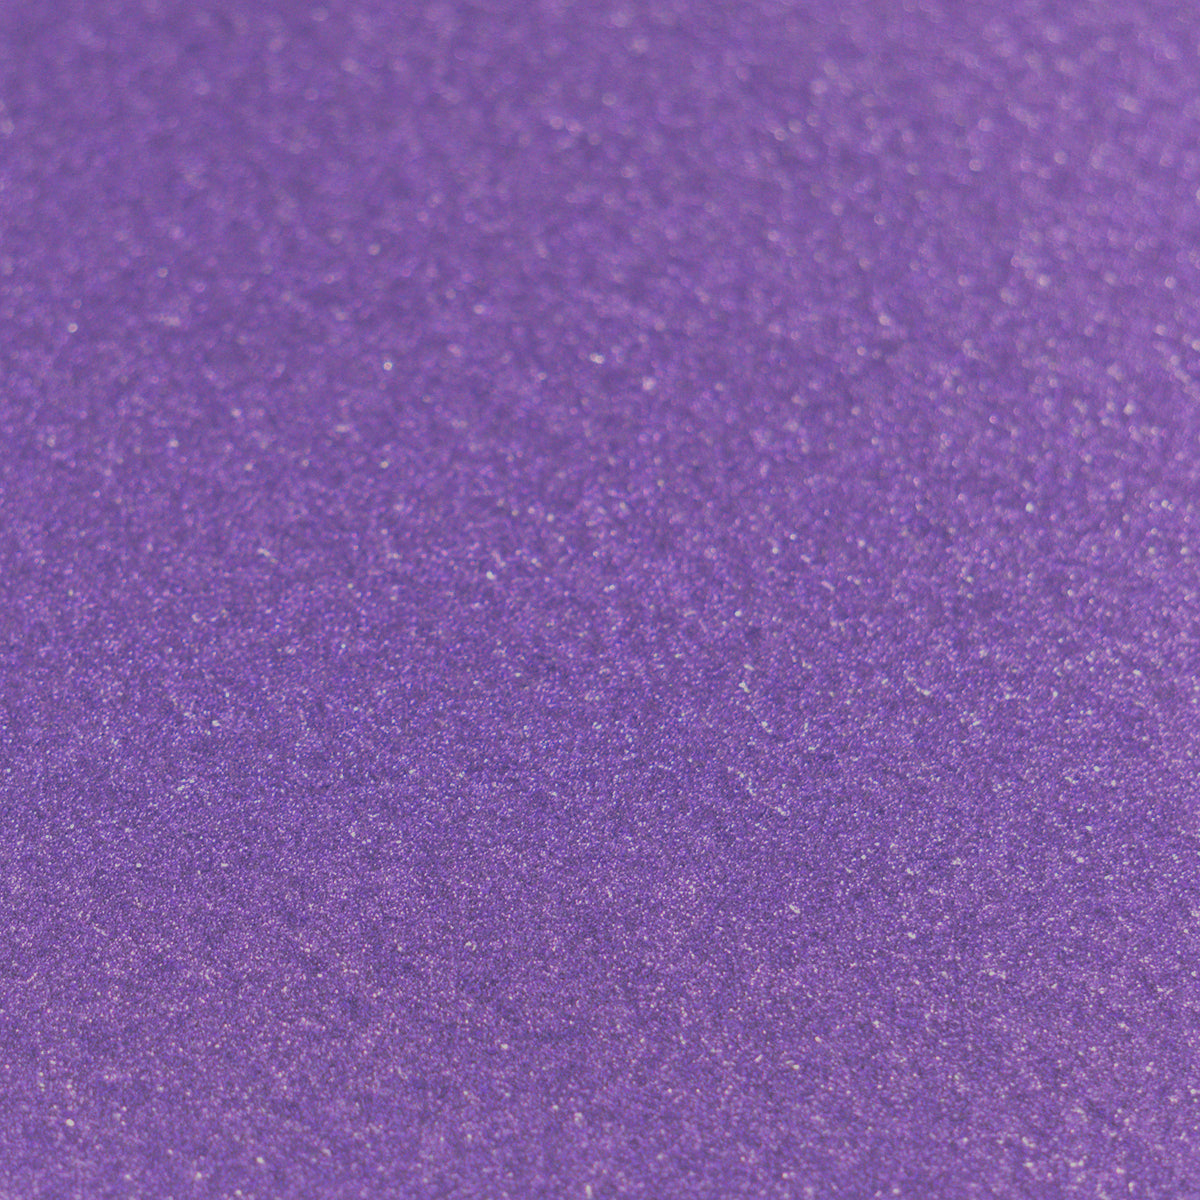 10sheets, 250gsm Couture Creations A4 Glitter Card Purple CO727169